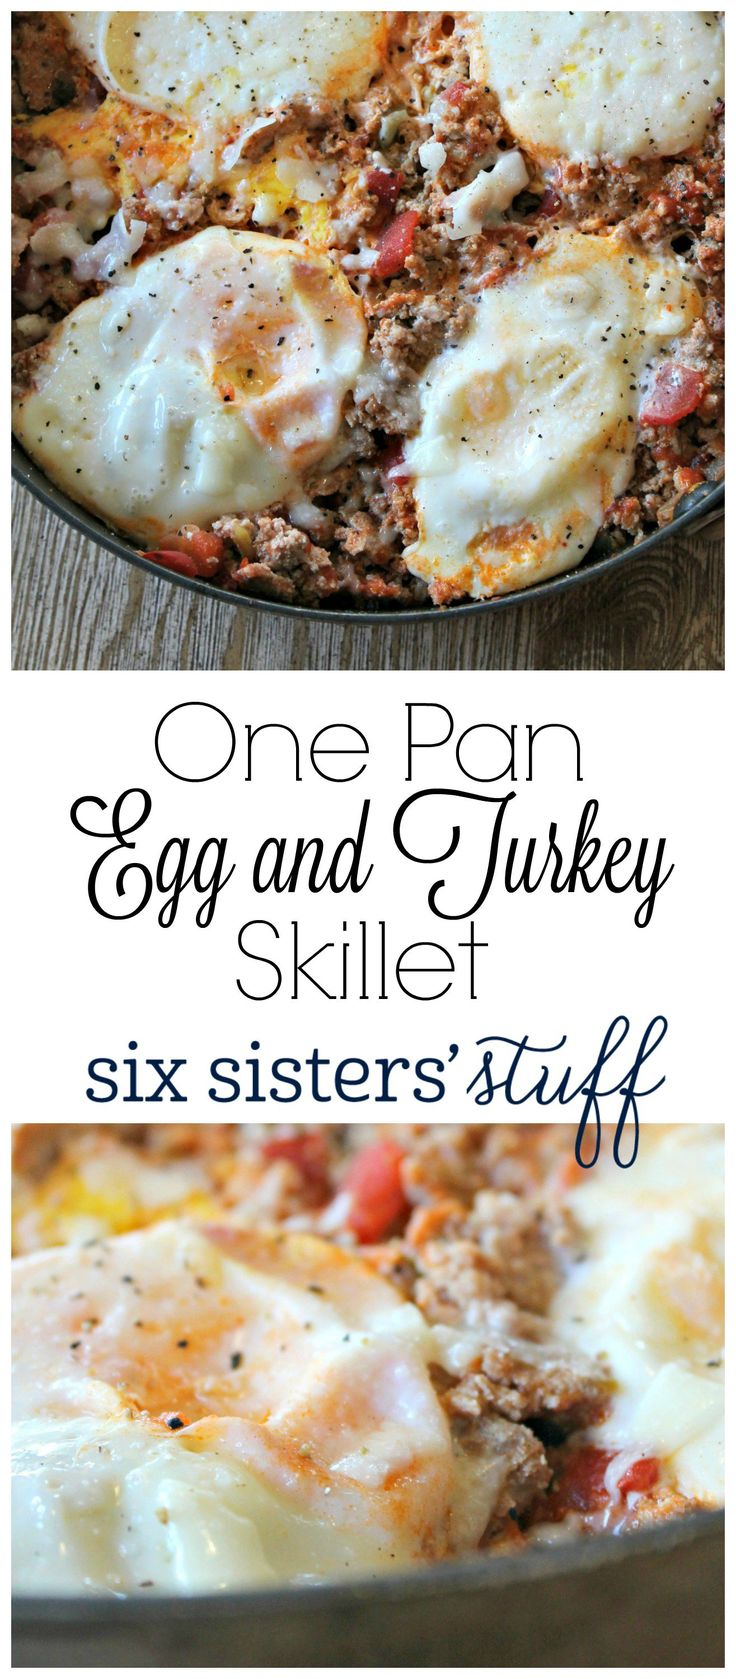 A quick healthy breakfast full of protein from Sixsistersstuff.com! One pan turkey and egg skillet! So good and great weeknight idea!- Sarah